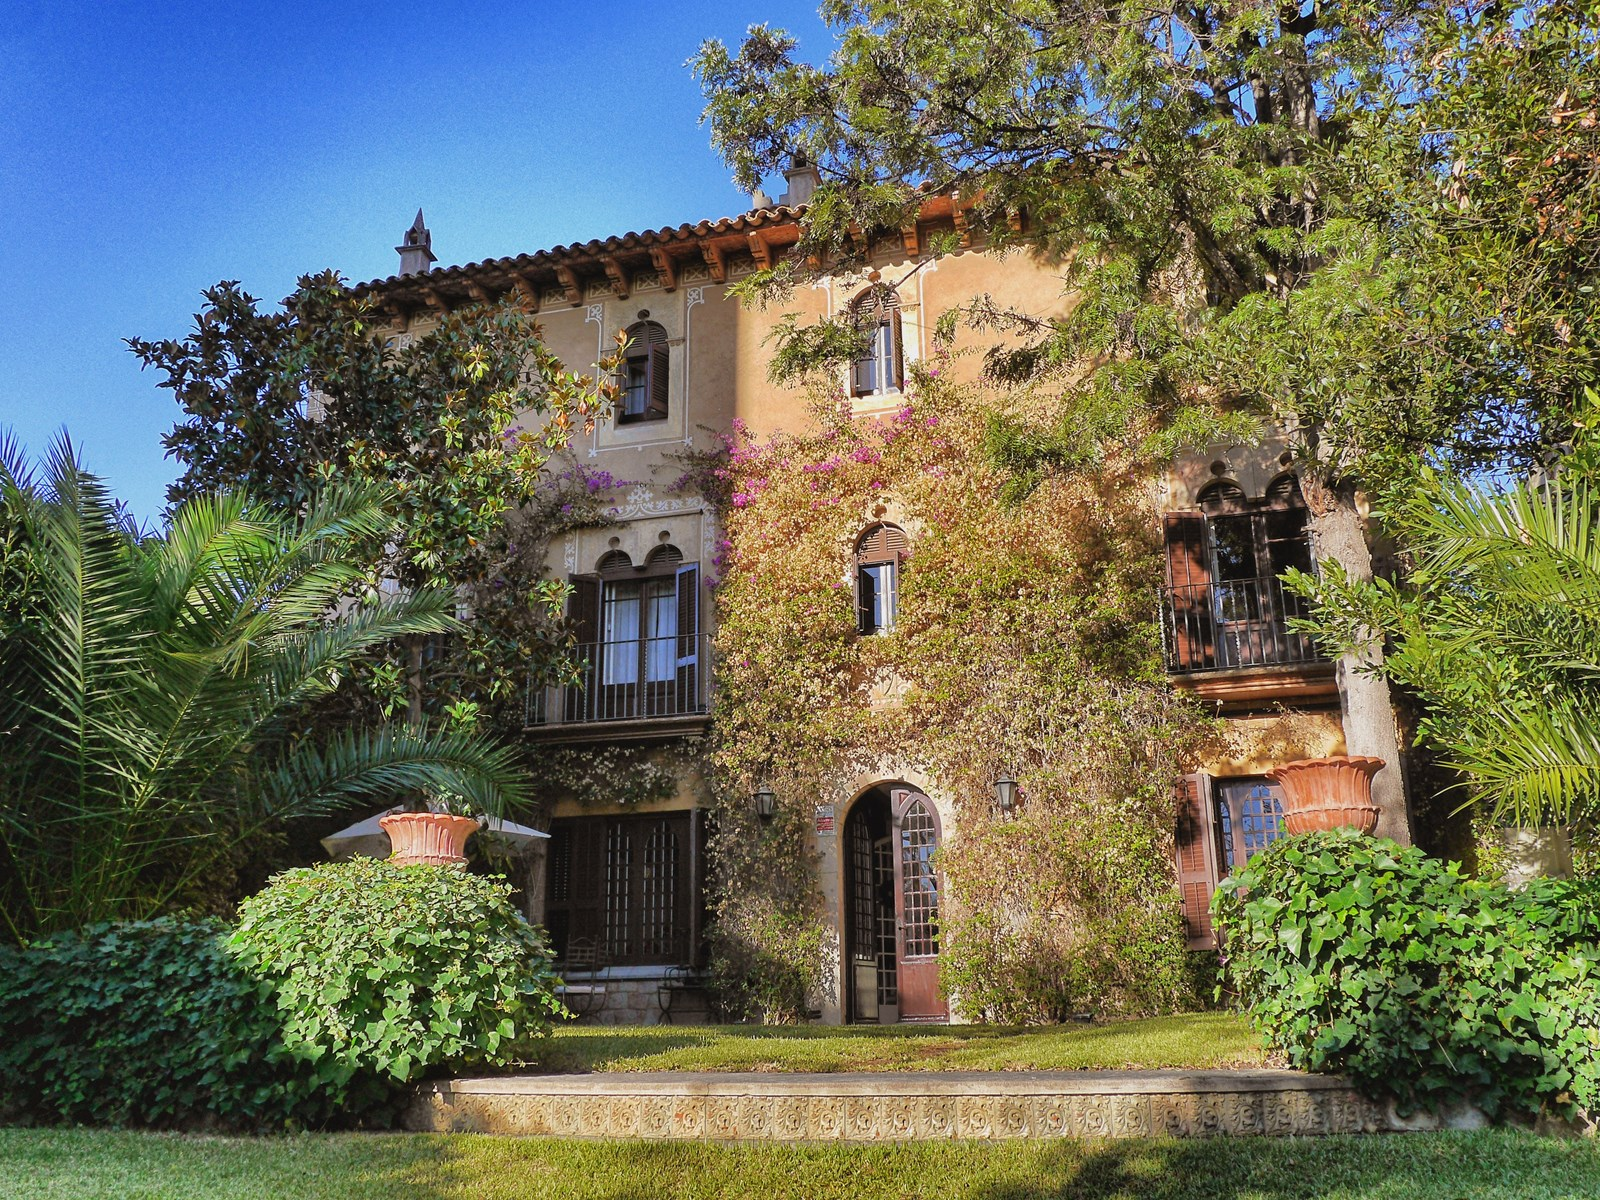 10 bedroom monastery house for sale in barcelona pedralbes for 10 bedroom mansion